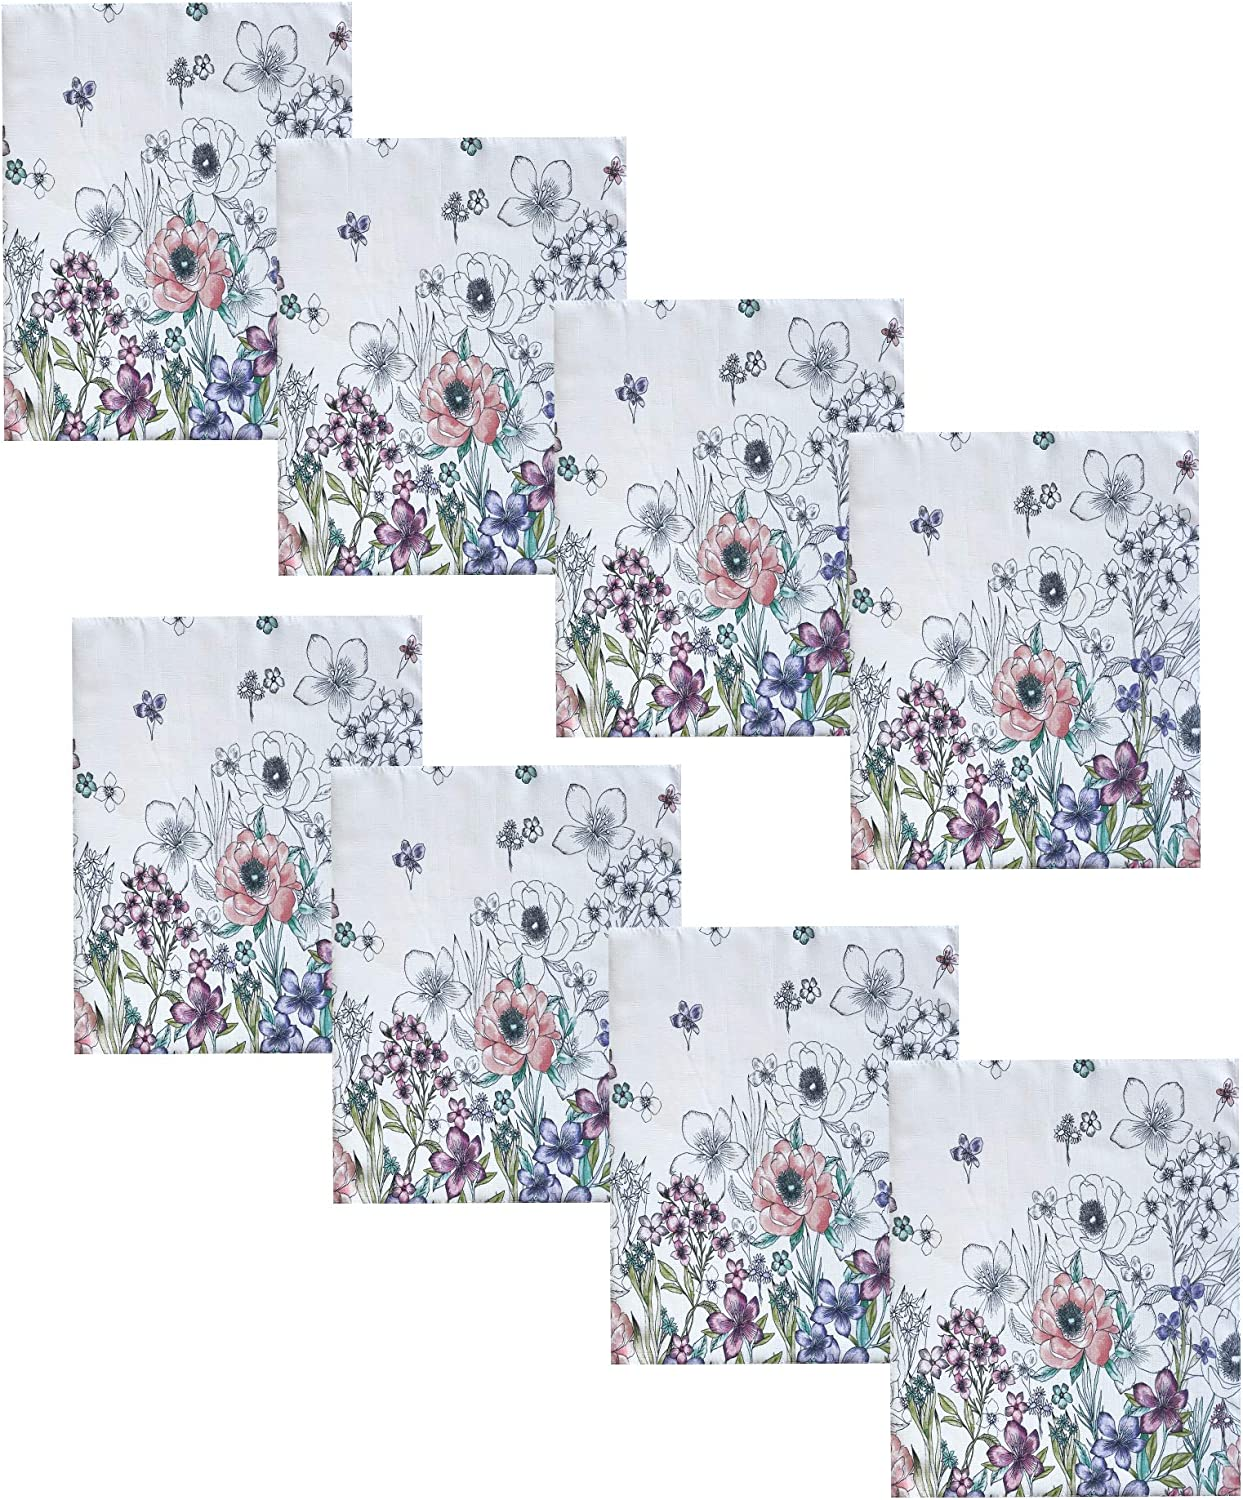 Newbridge Shabby Chic Garden Breeze Easter and Spring Fabric Napkins - Sweet Pastel Colored Floral Border Print Easy Care, Stain Resistant Fabric Napkins, Set of 8 Napkins